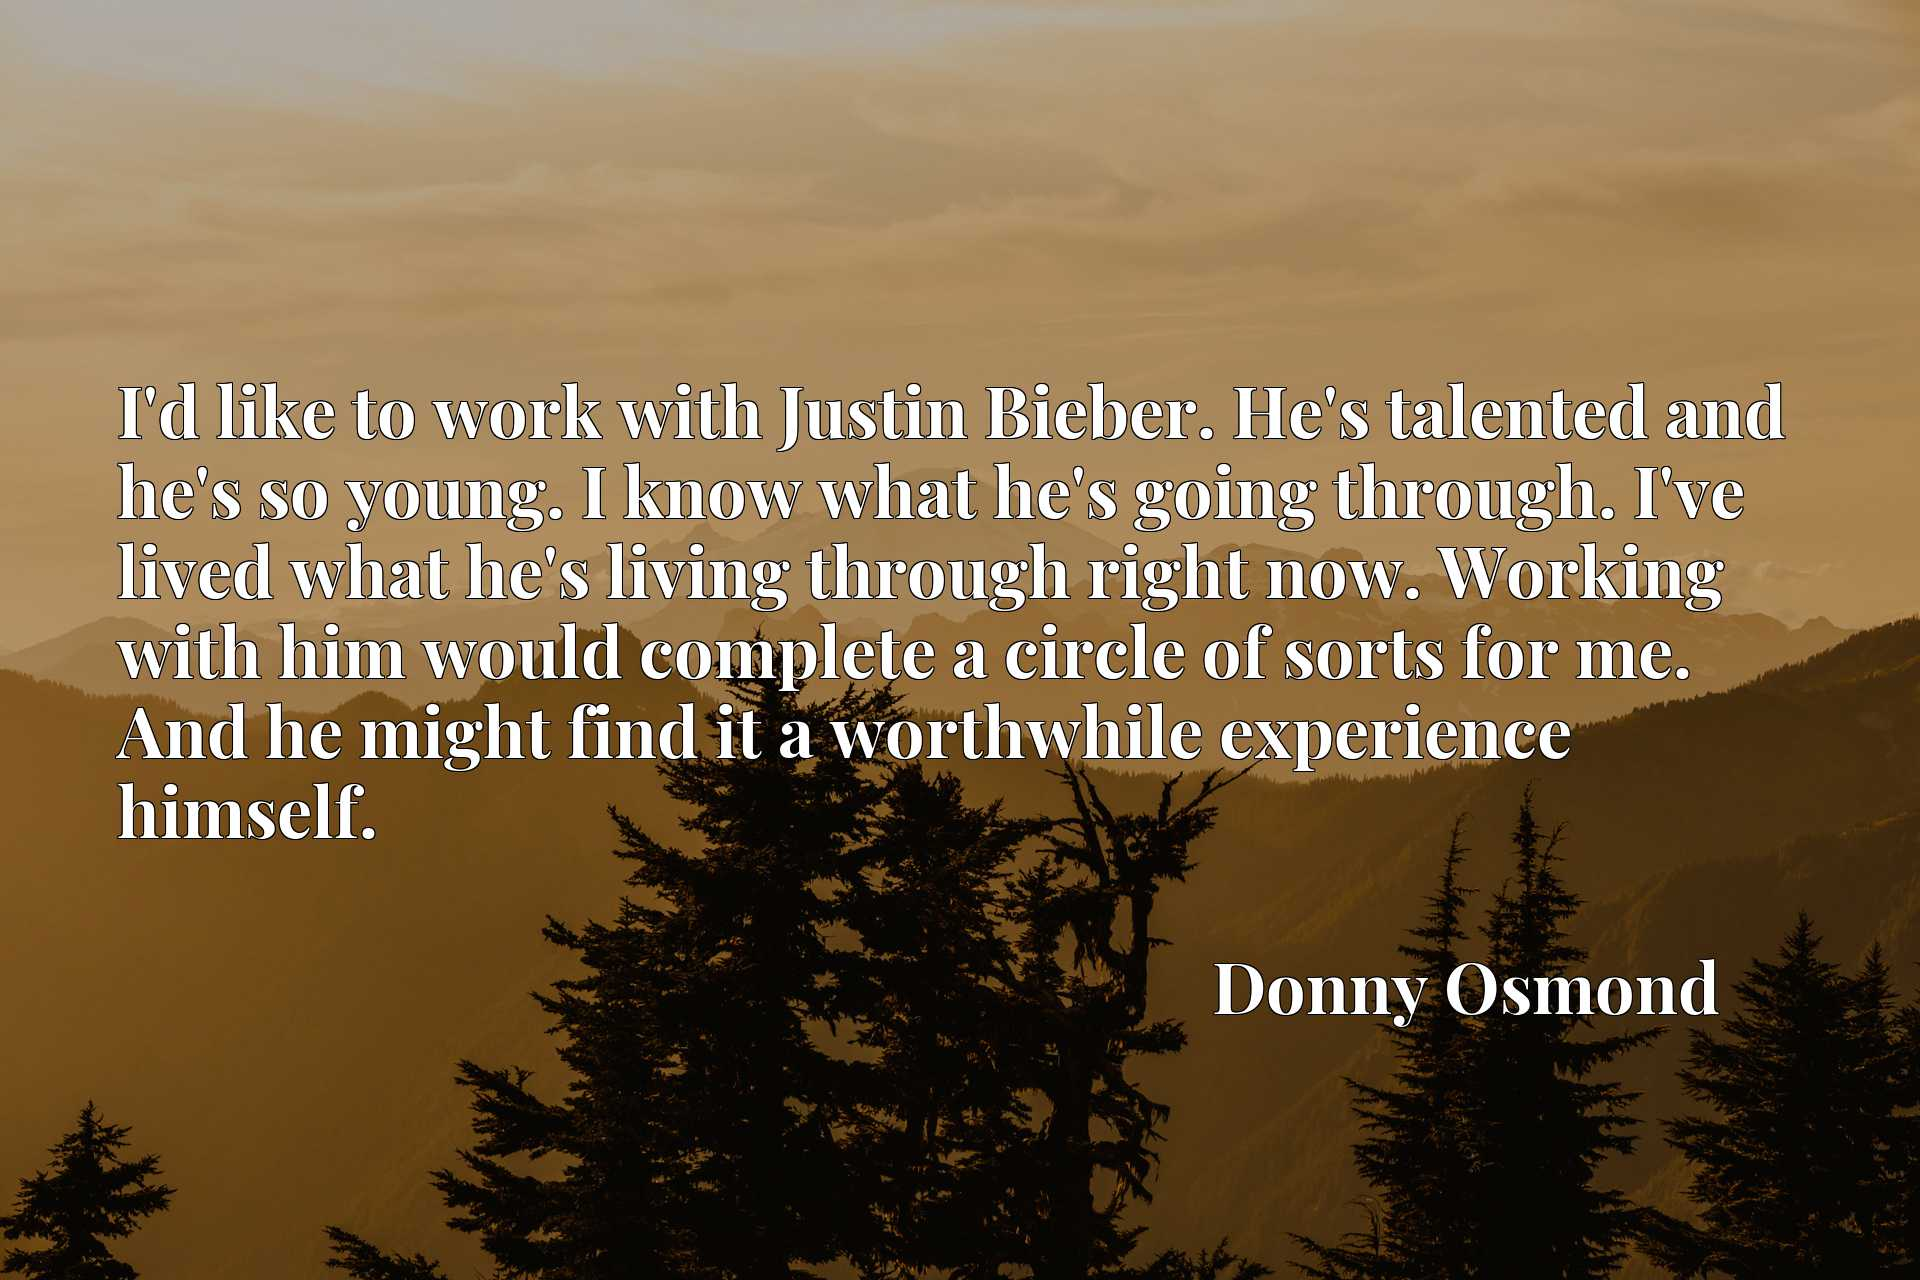 I'd like to work with Justin Bieber. He's talented and he's so young. I know what he's going through. I've lived what he's living through right now. Working with him would complete a circle of sorts for me. And he might find it a worthwhile experience himself.